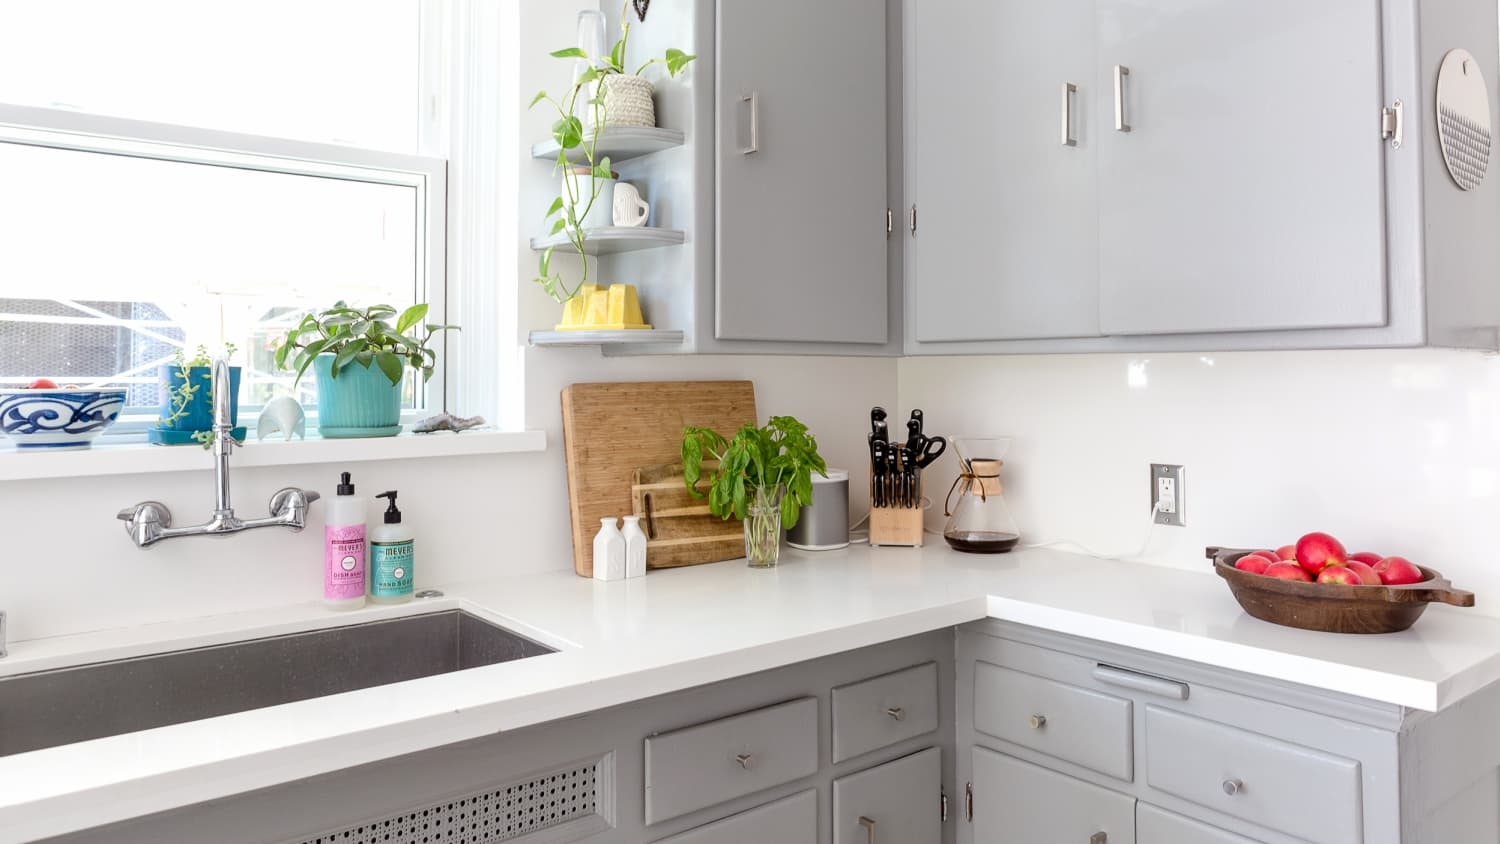 5 Smart Ways To Use Your Kitchen Window For Extra Storage Kitchn